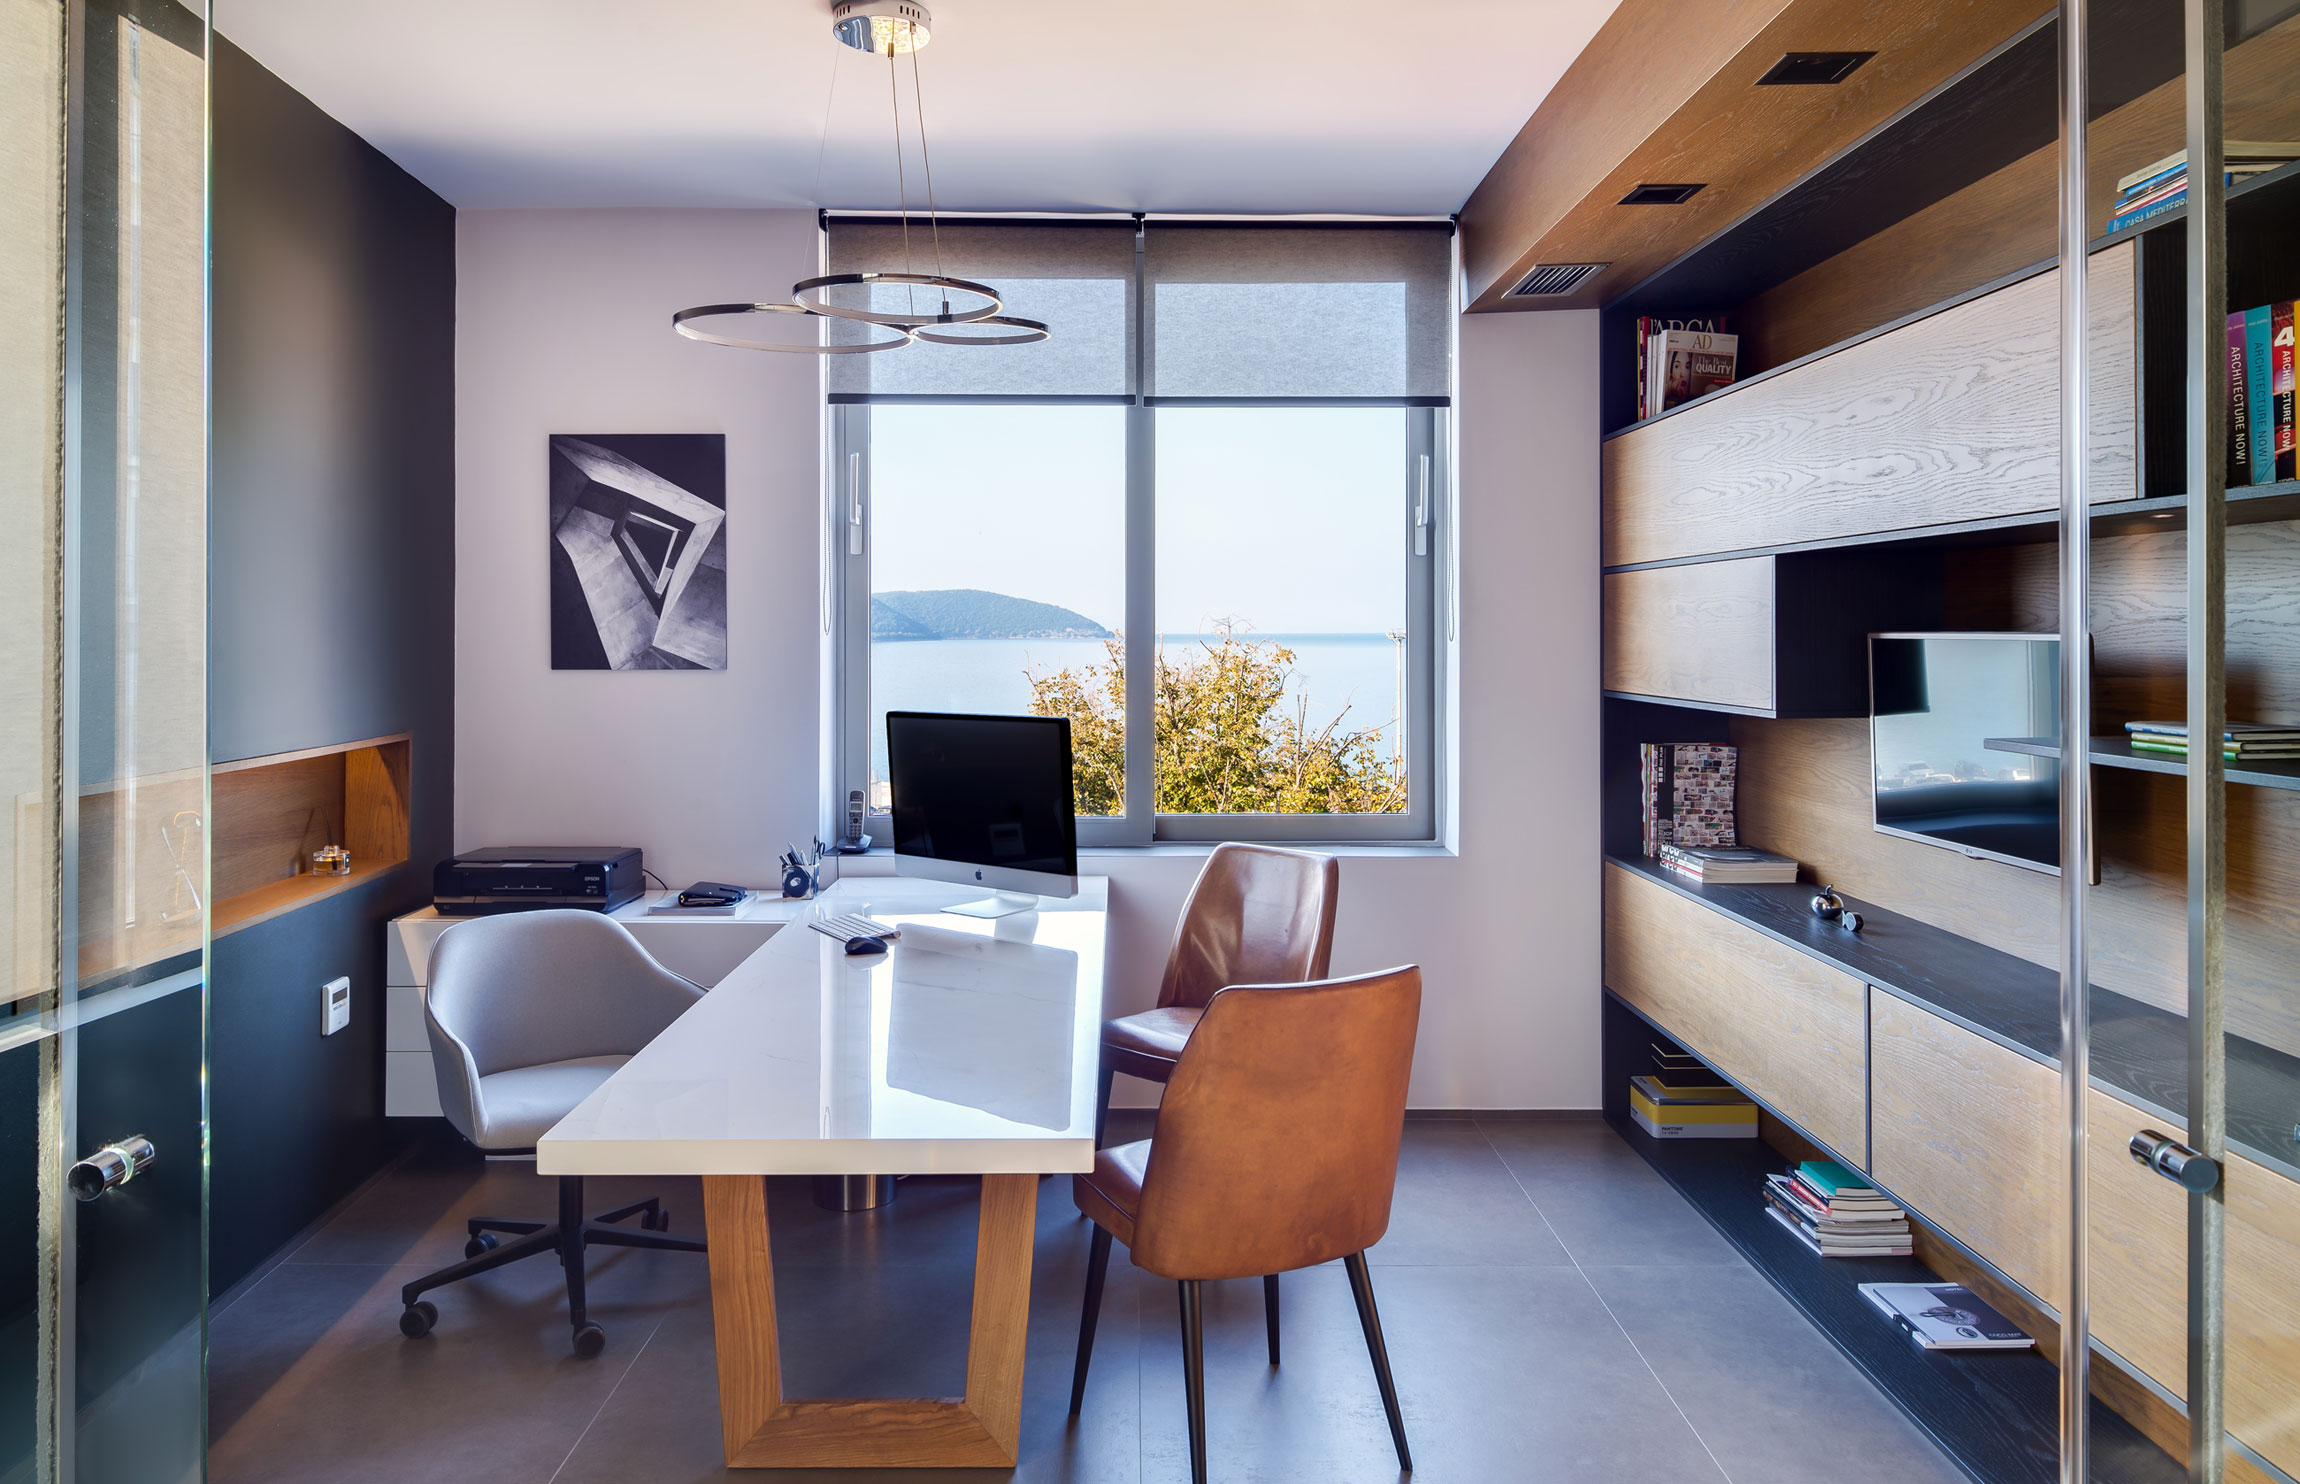 The Stylish Offices of VR Architects in Igoumenitsa, Greece